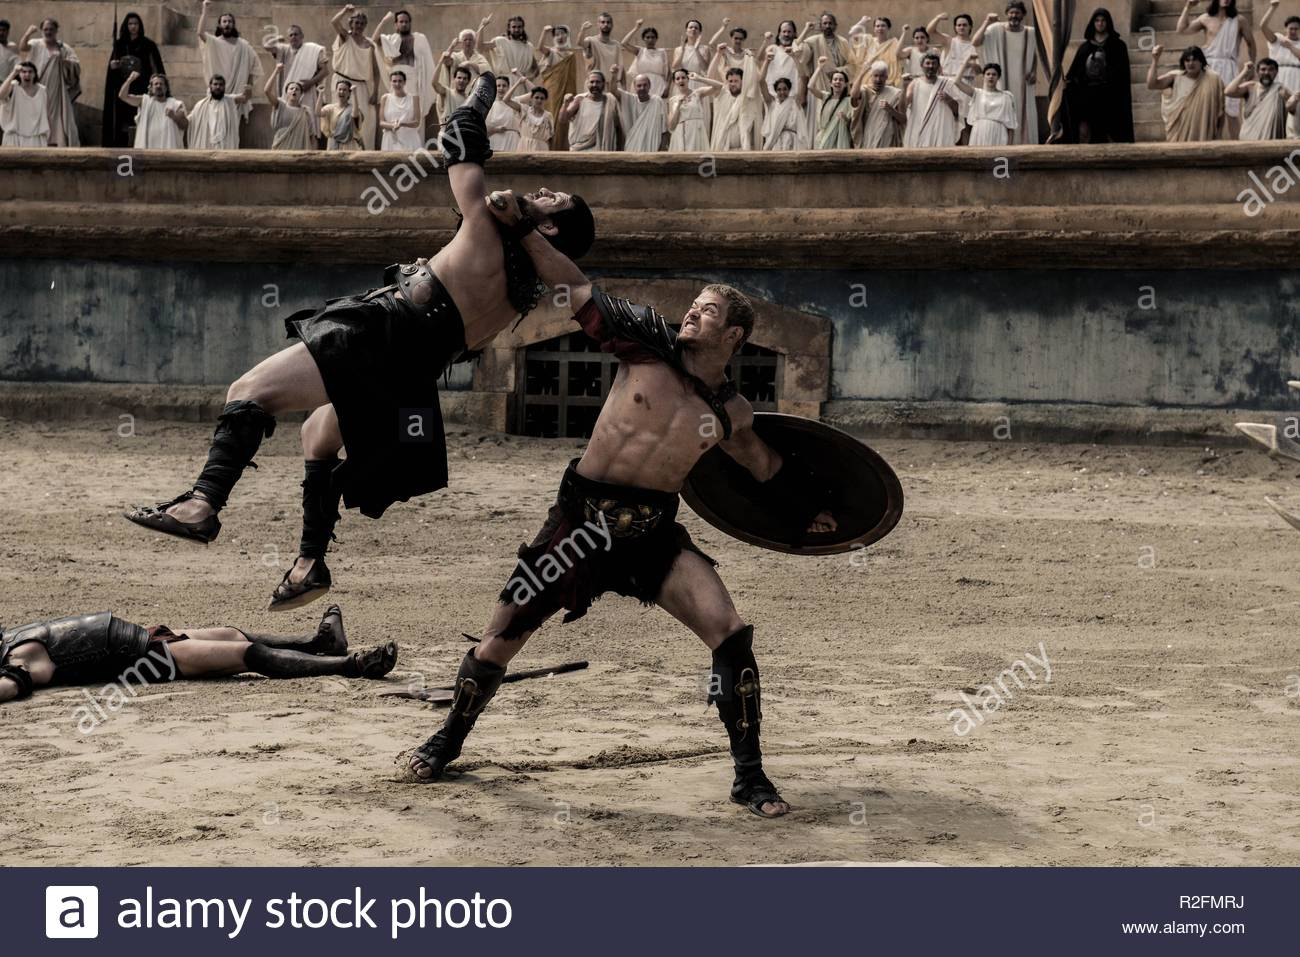 Legend Of Hercules Stock Photos and Images